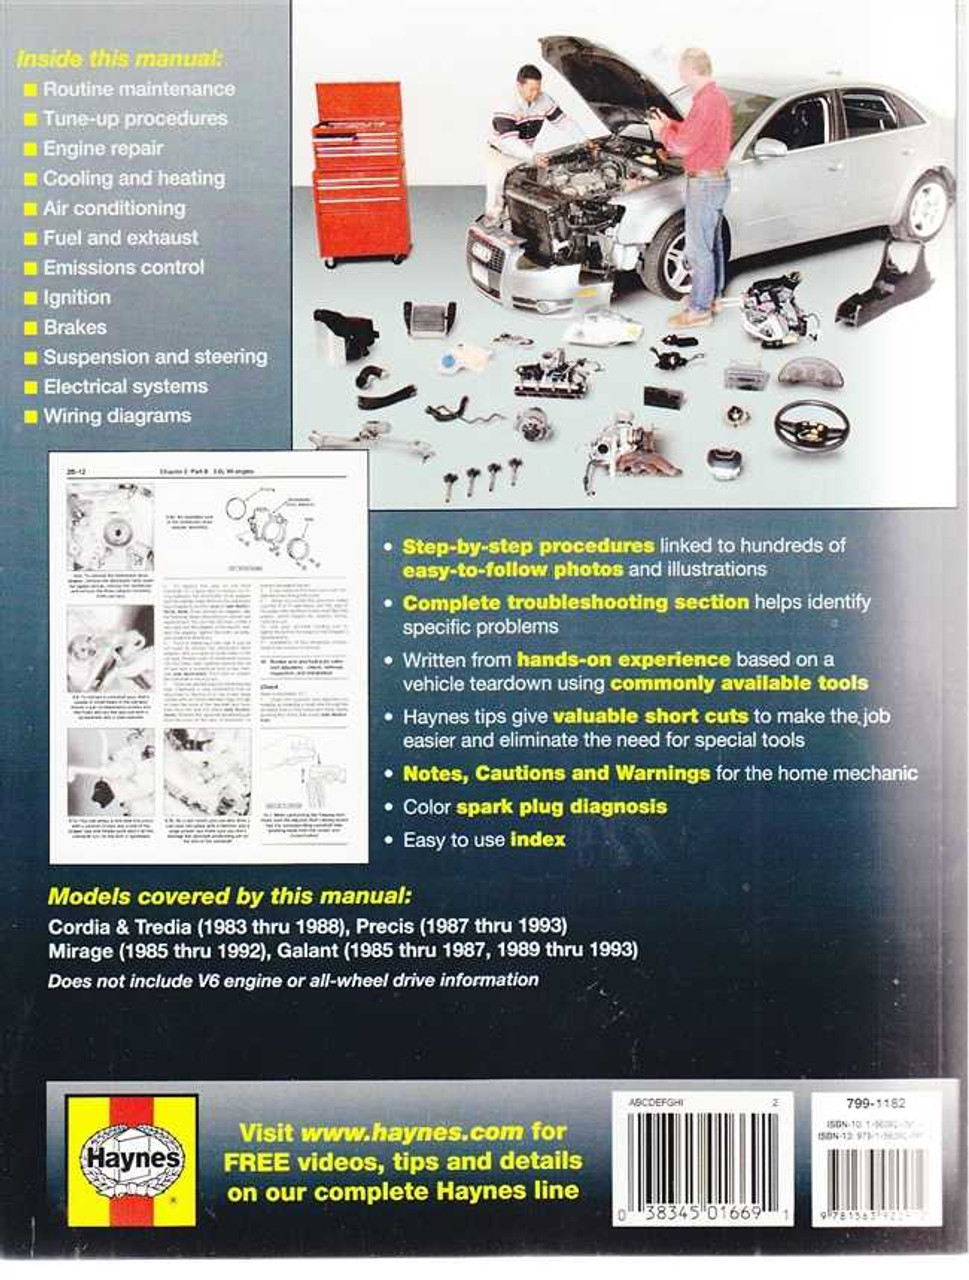 Service Manual Wiring Diagram Opel Tis Wiring Diagrams Repair Manual